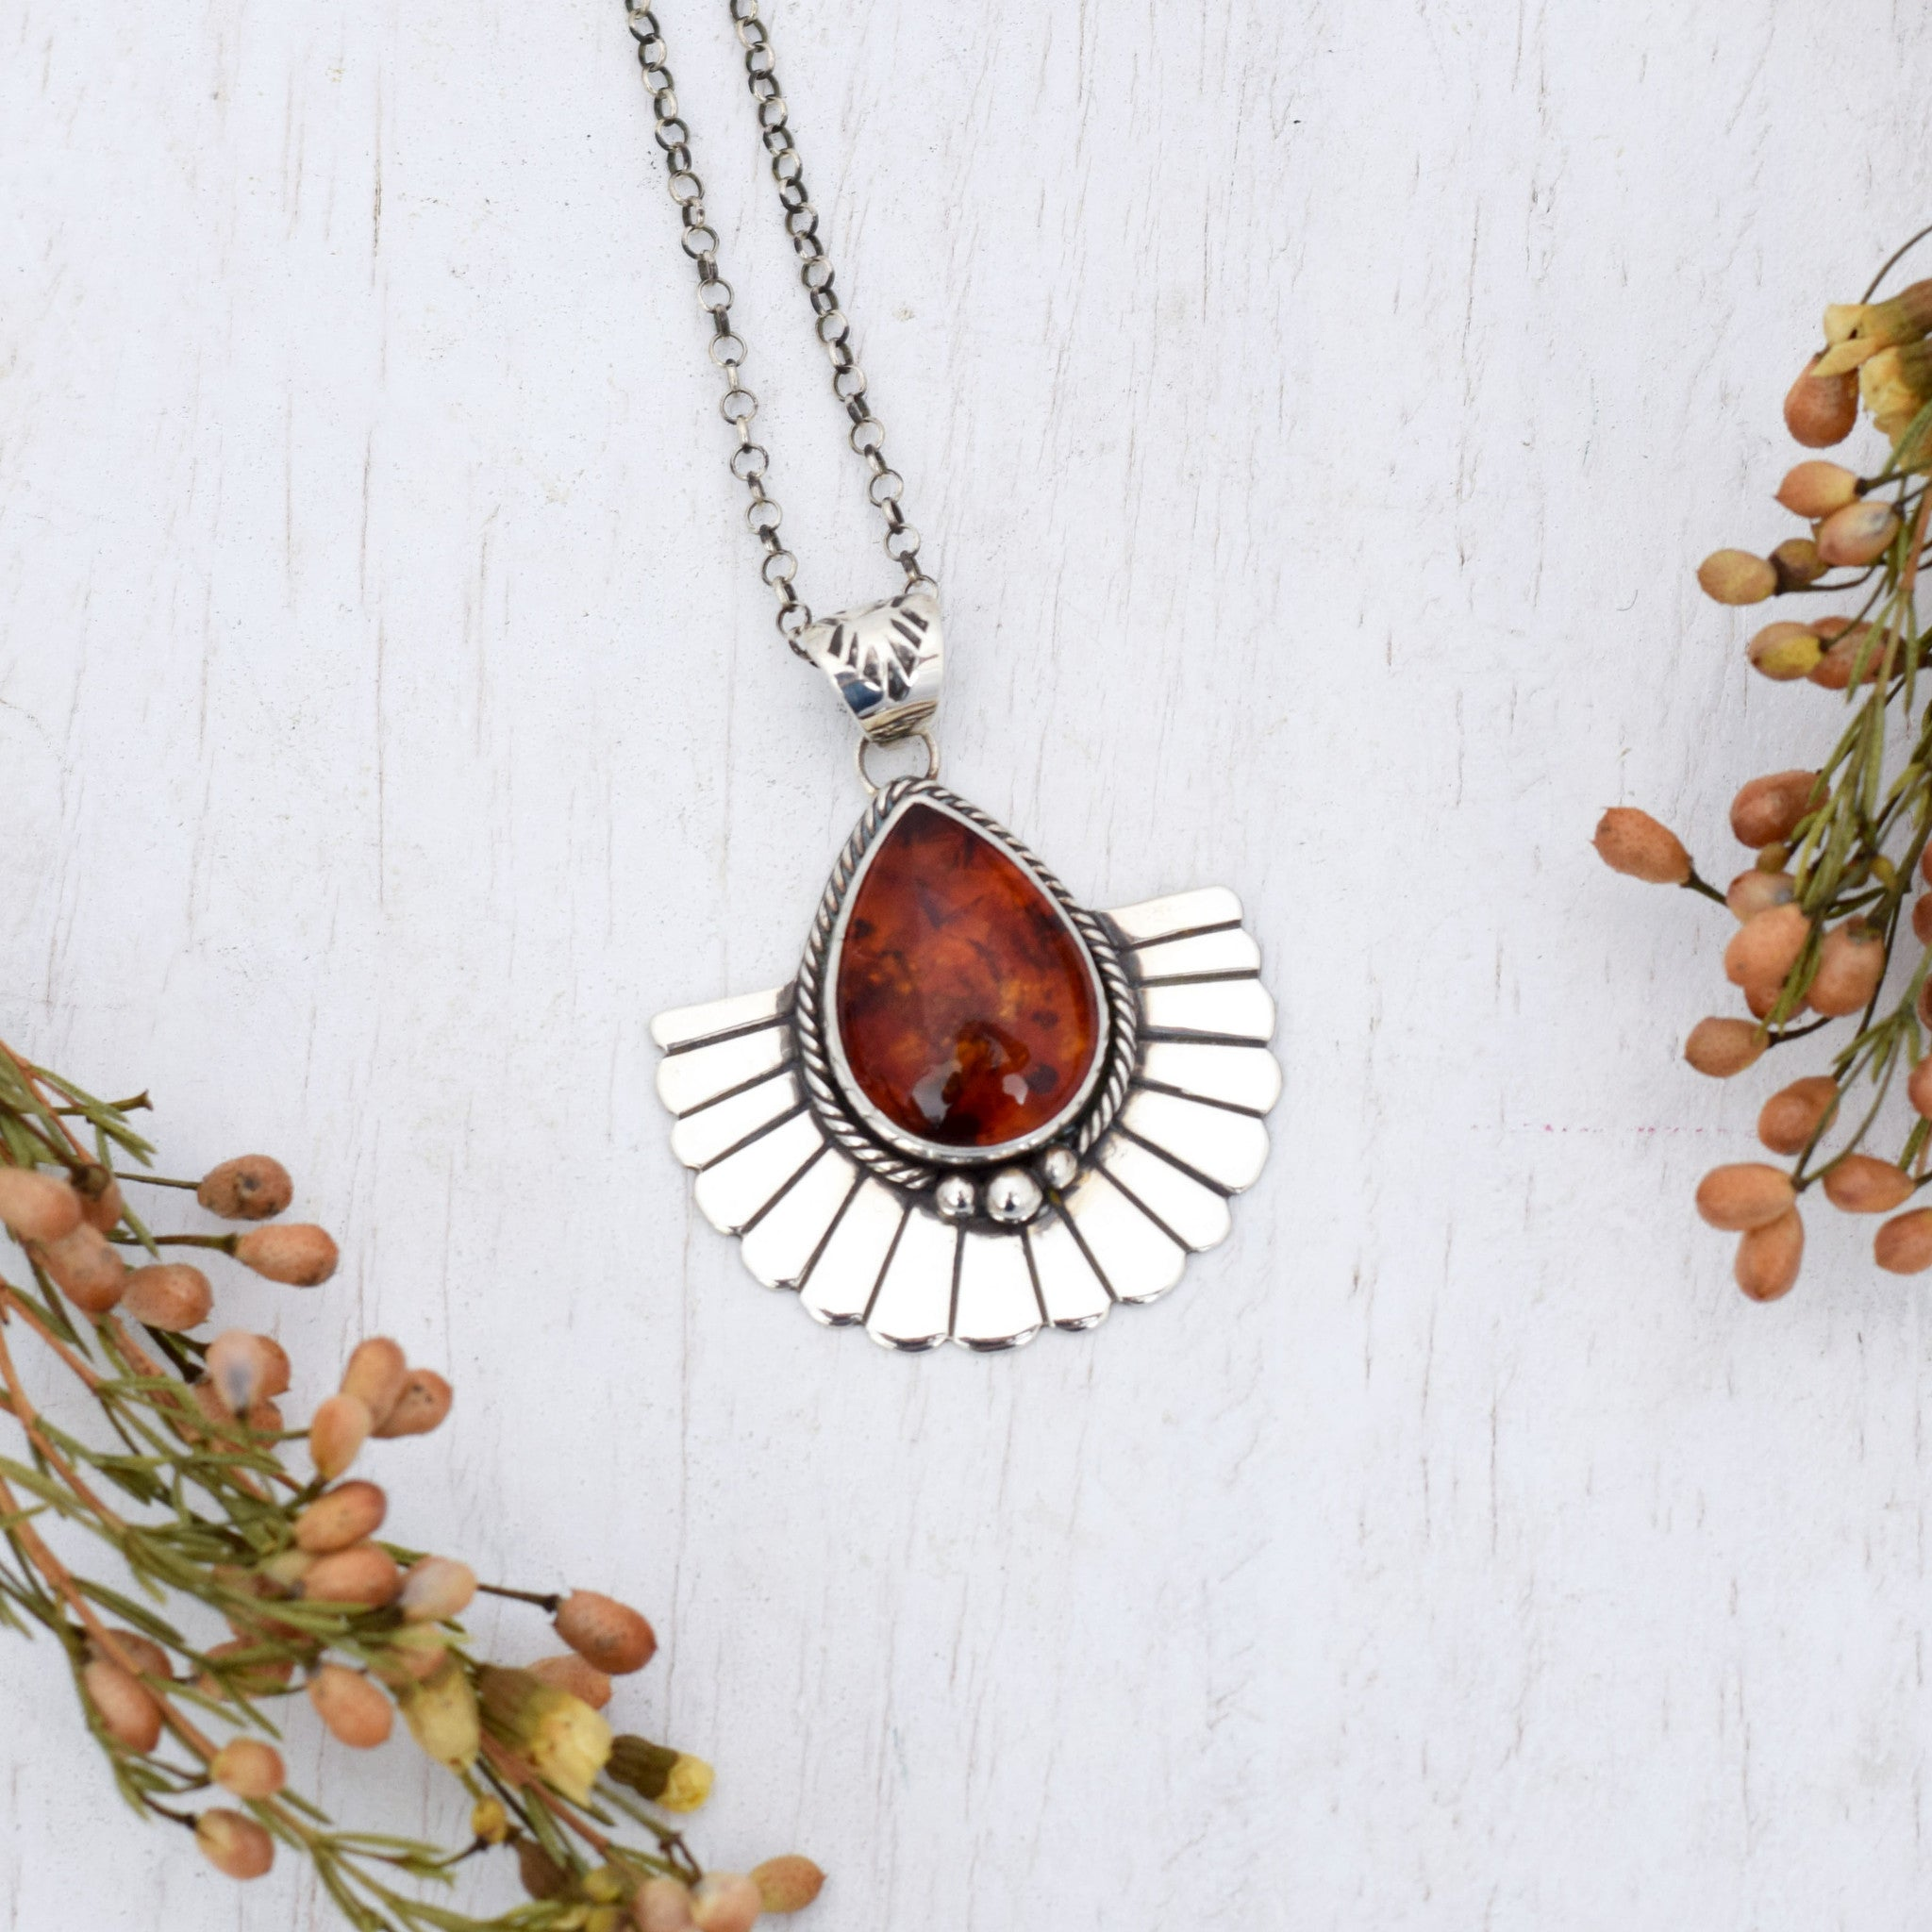 Amber Rays Necklace